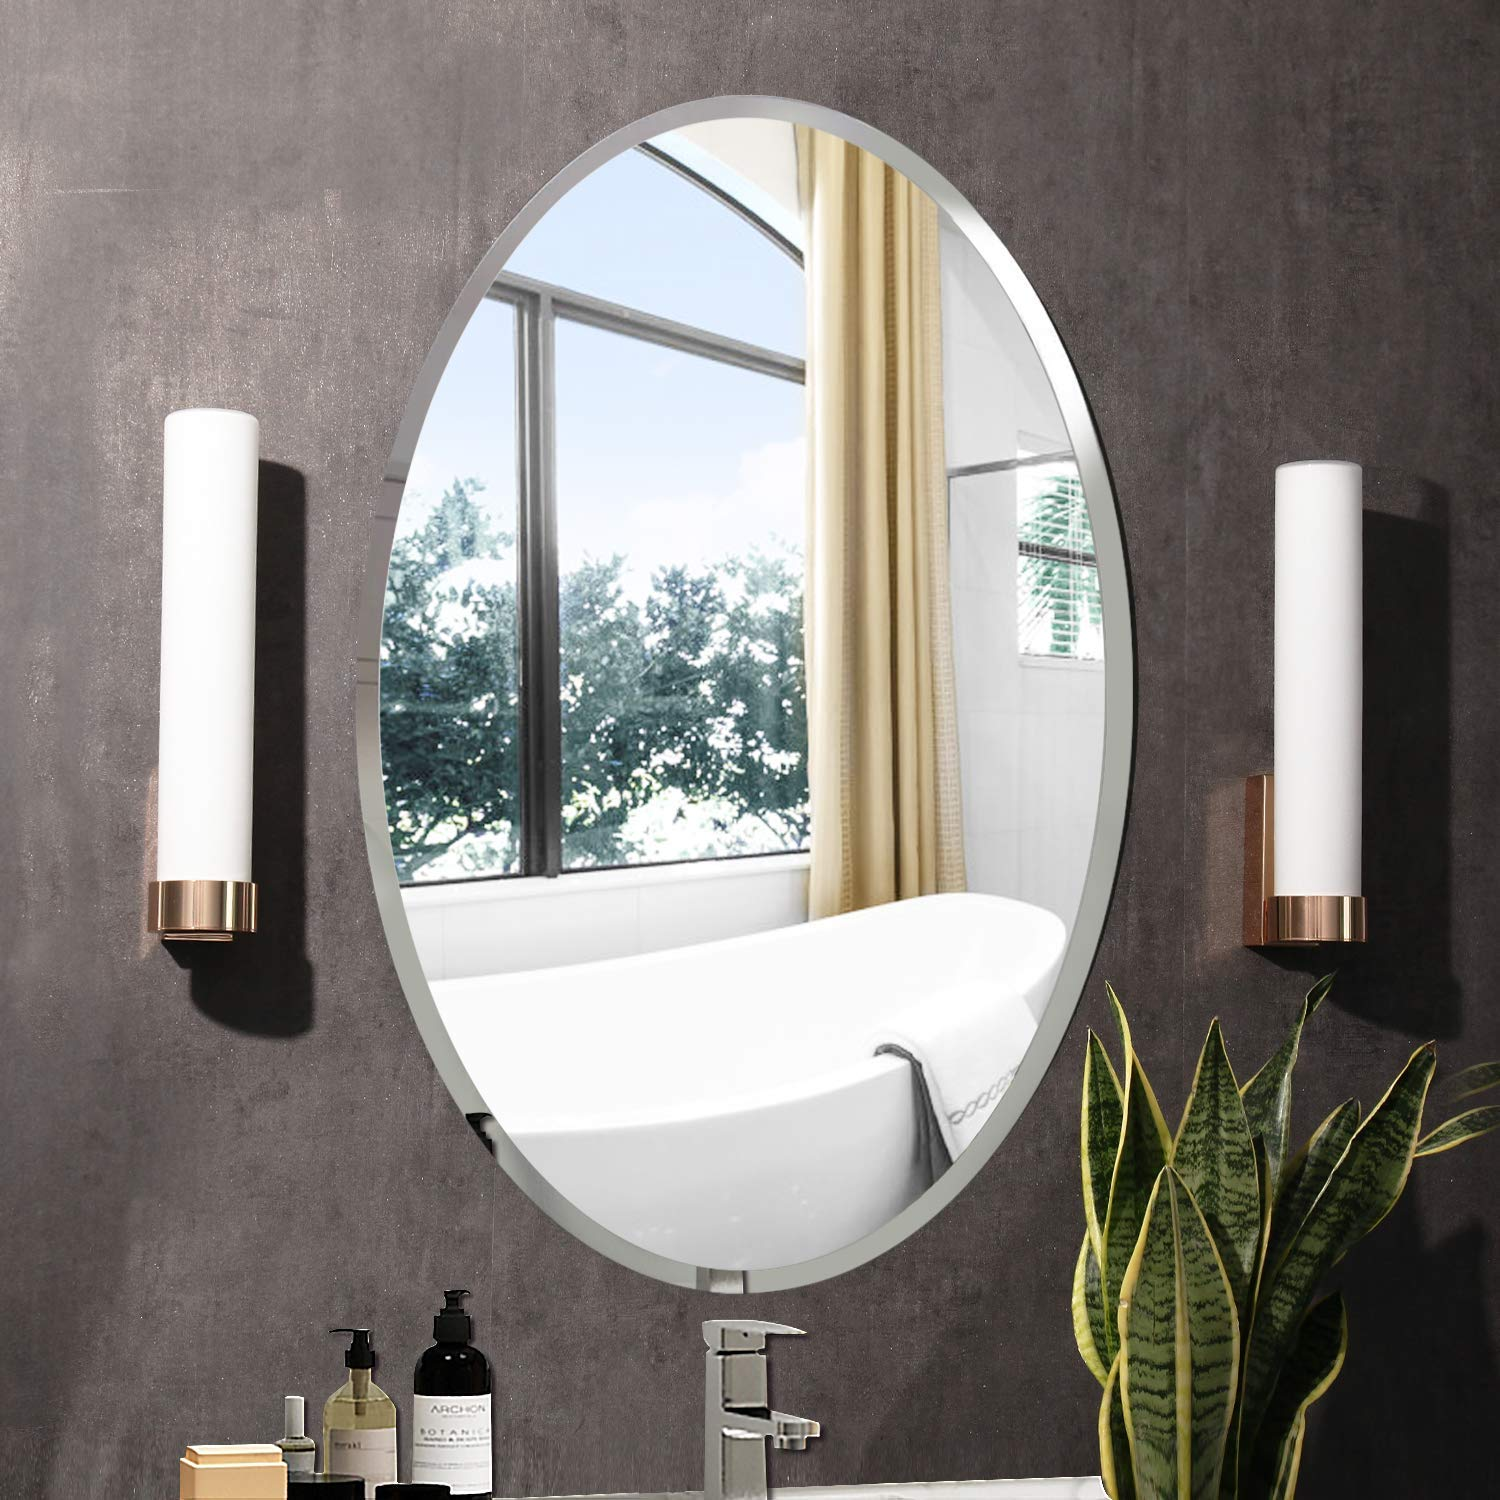 Buy Seven Horses Oval Bevelled Mirror Glass White 18x 24 Inch Online At Low Prices In India Amazon In